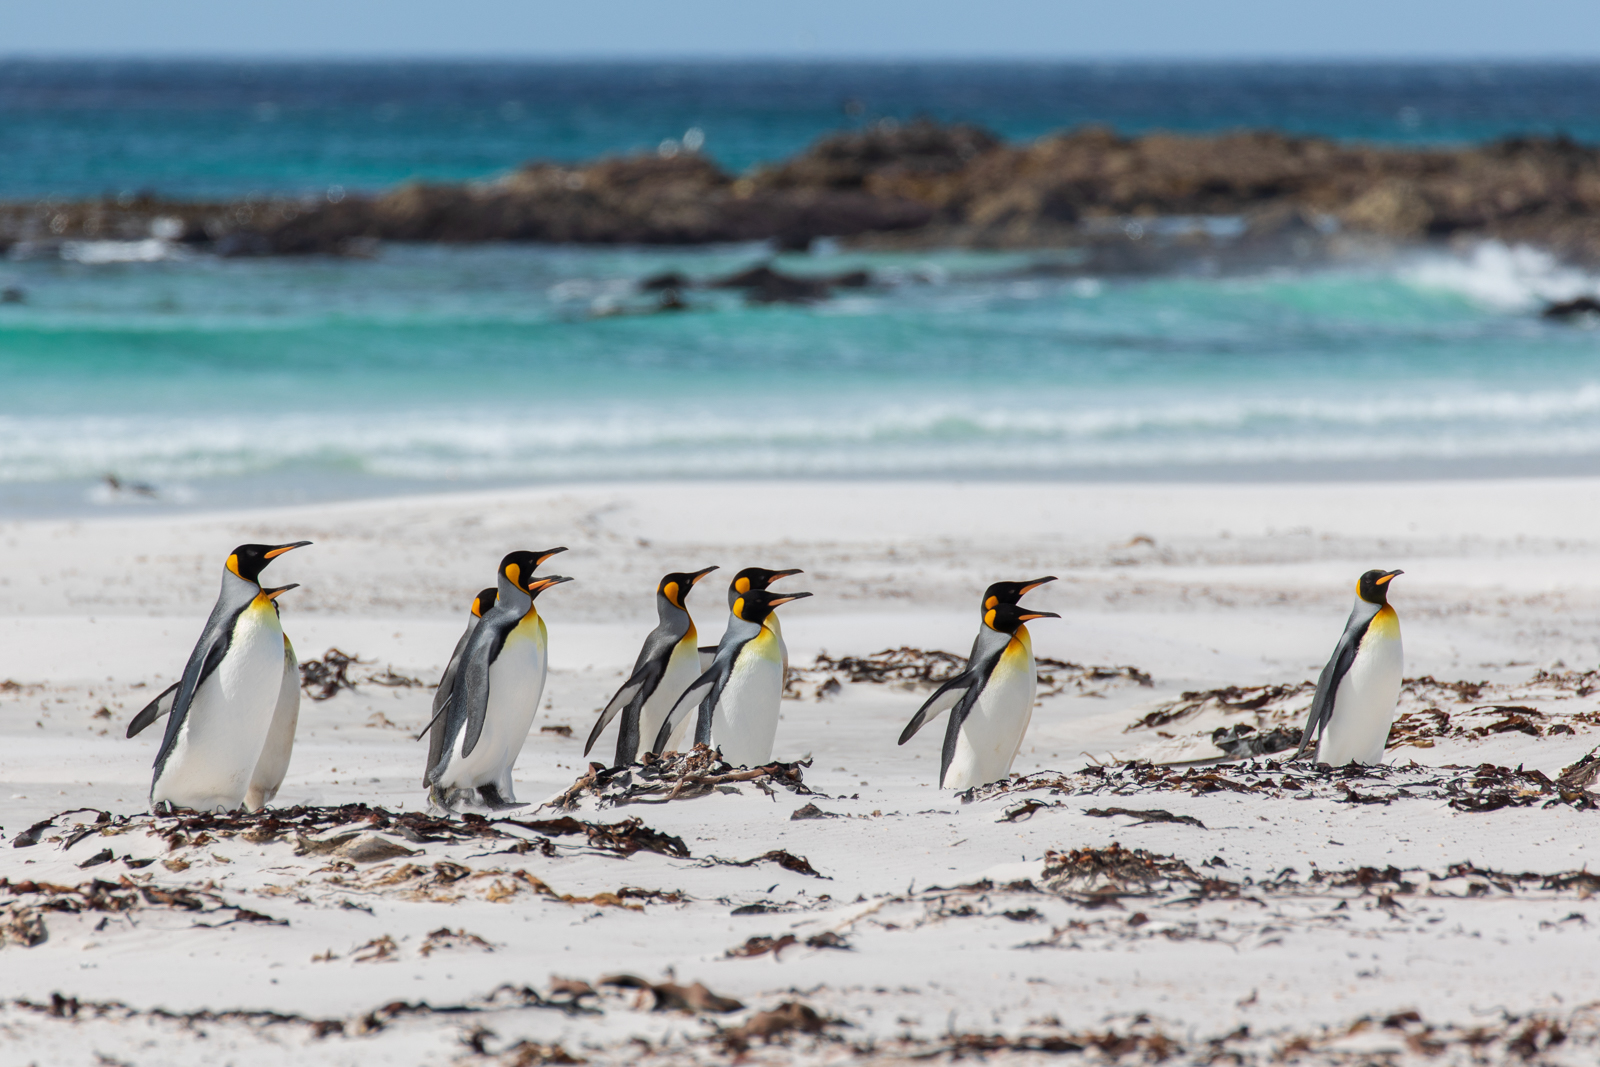 My first glimpse of the stunning beach and King Penguins